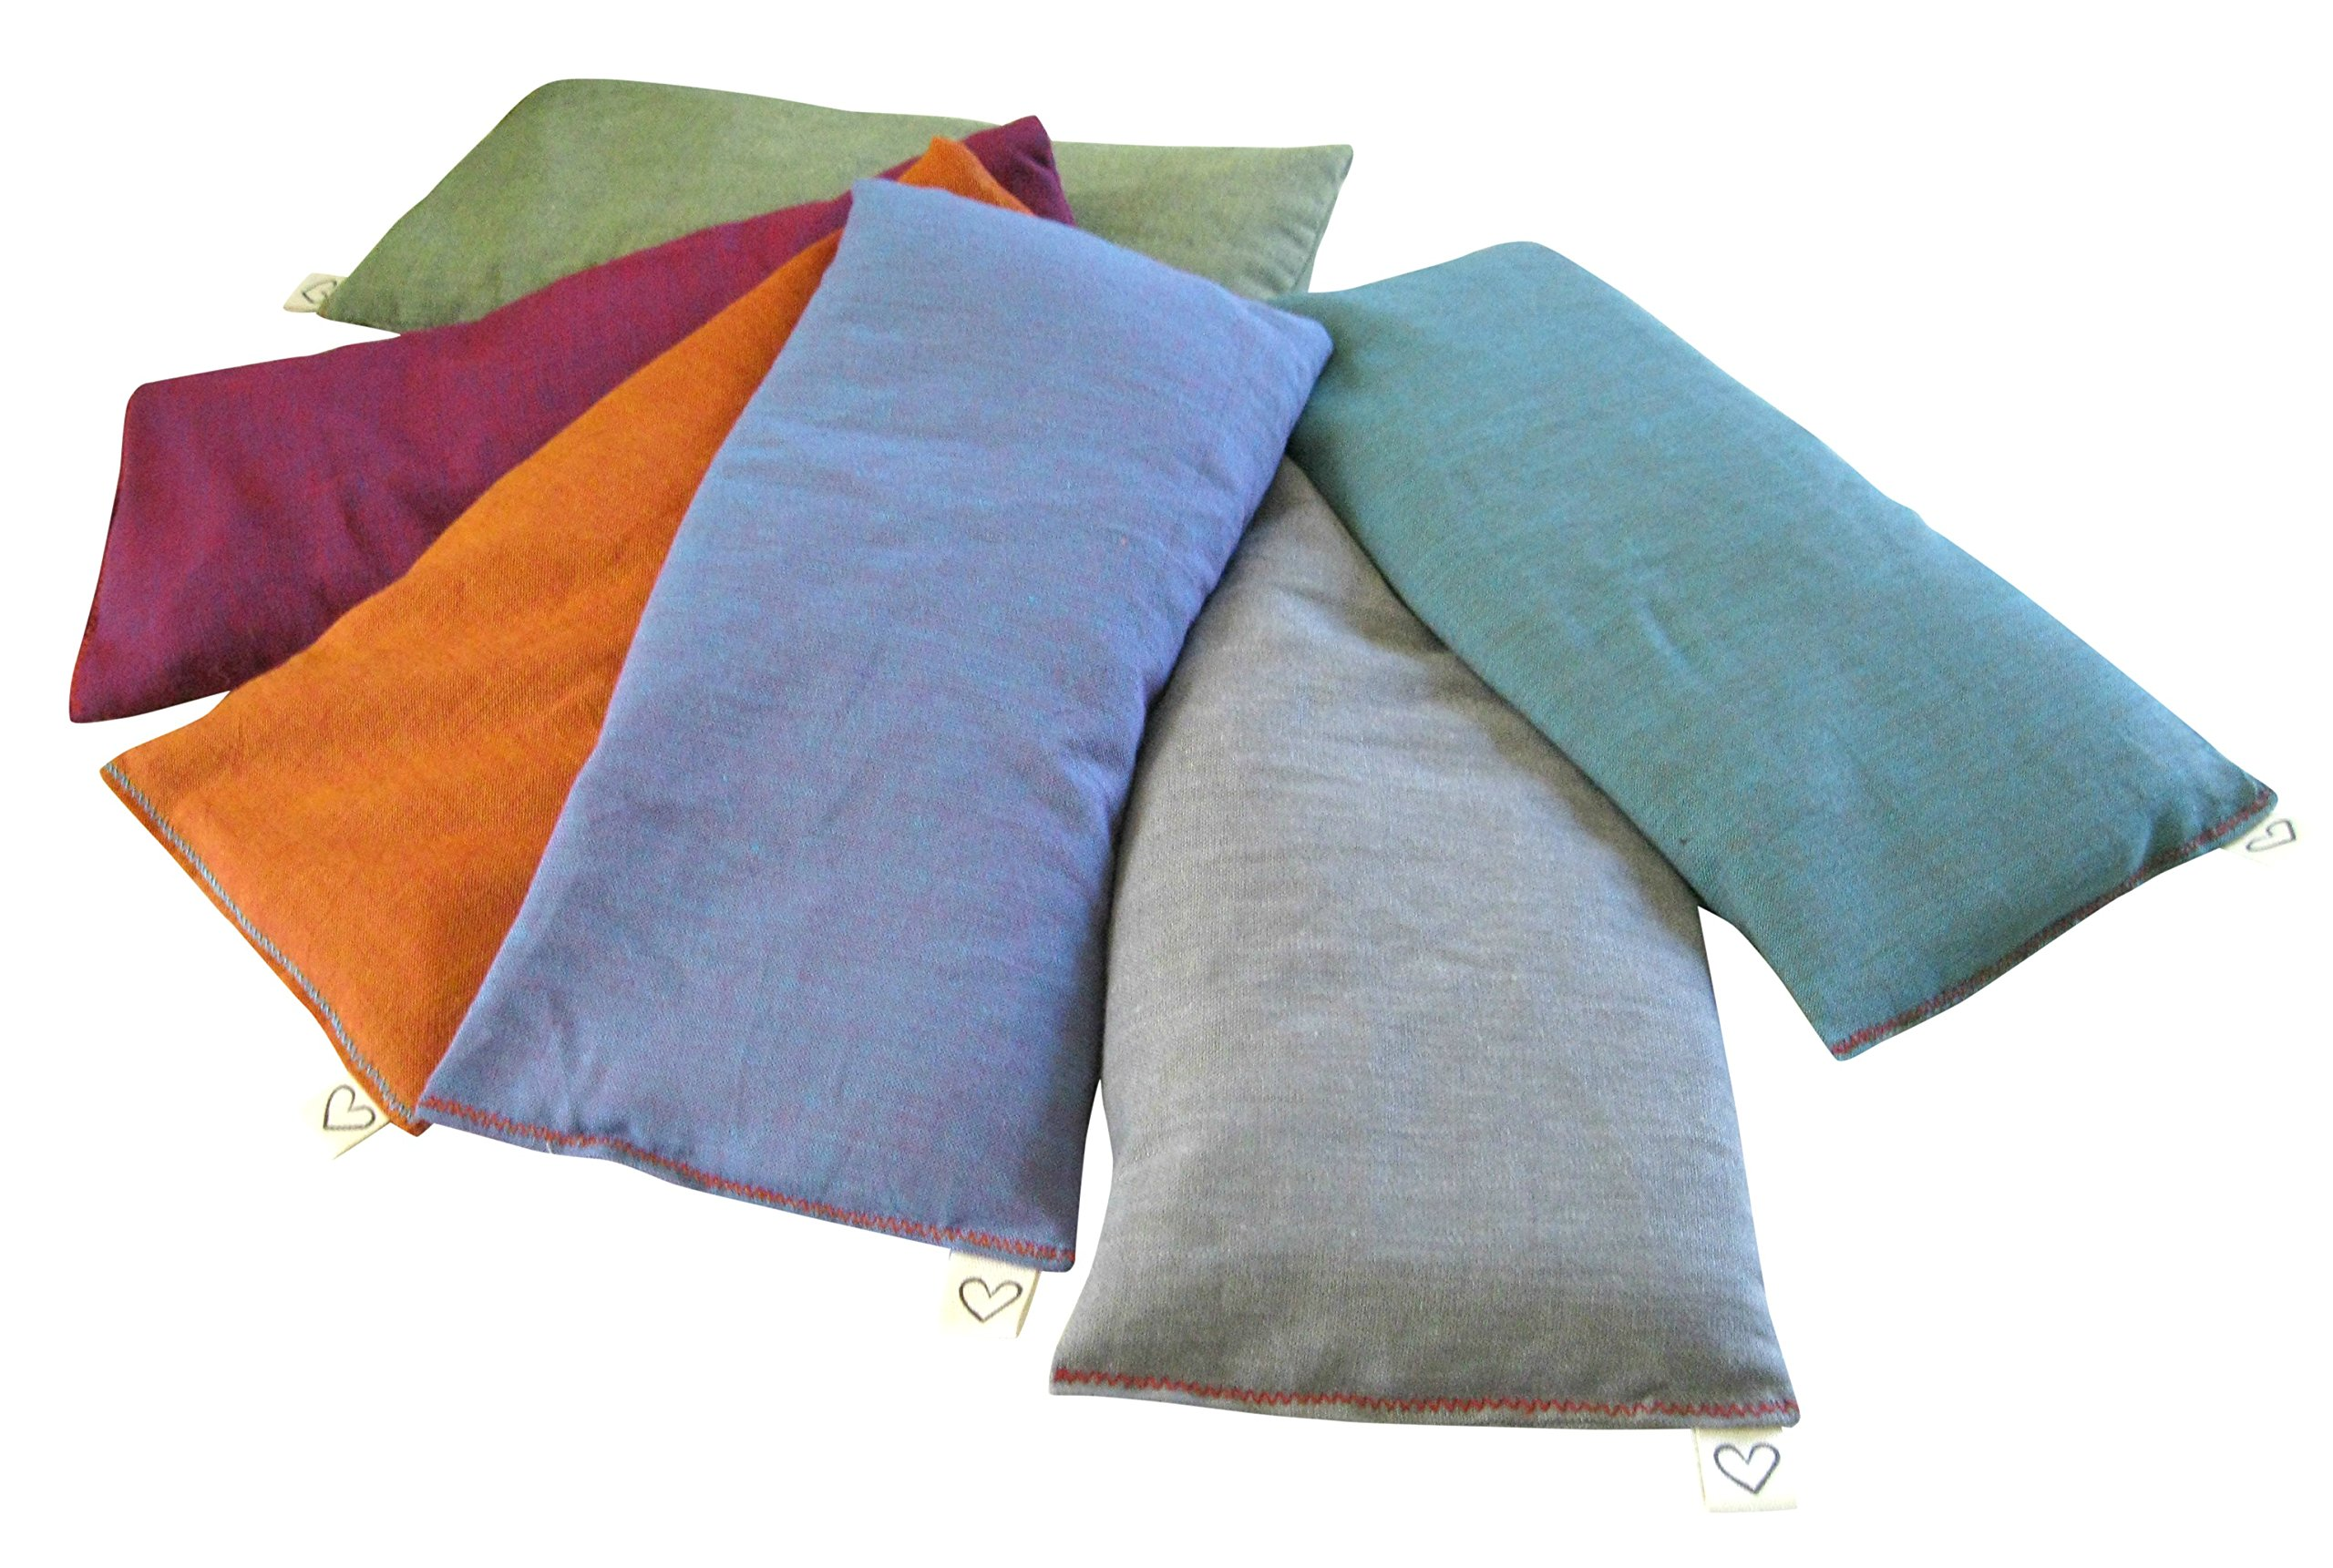 Peacegoods (6 Scented Lavender Flax Seed Eye Pillows - 4 x 8.5 - Soft & Soothing Cotton - Naturally Calming Colors - Teal Green Purple Terracotta Gray Lilac by Peacegoods